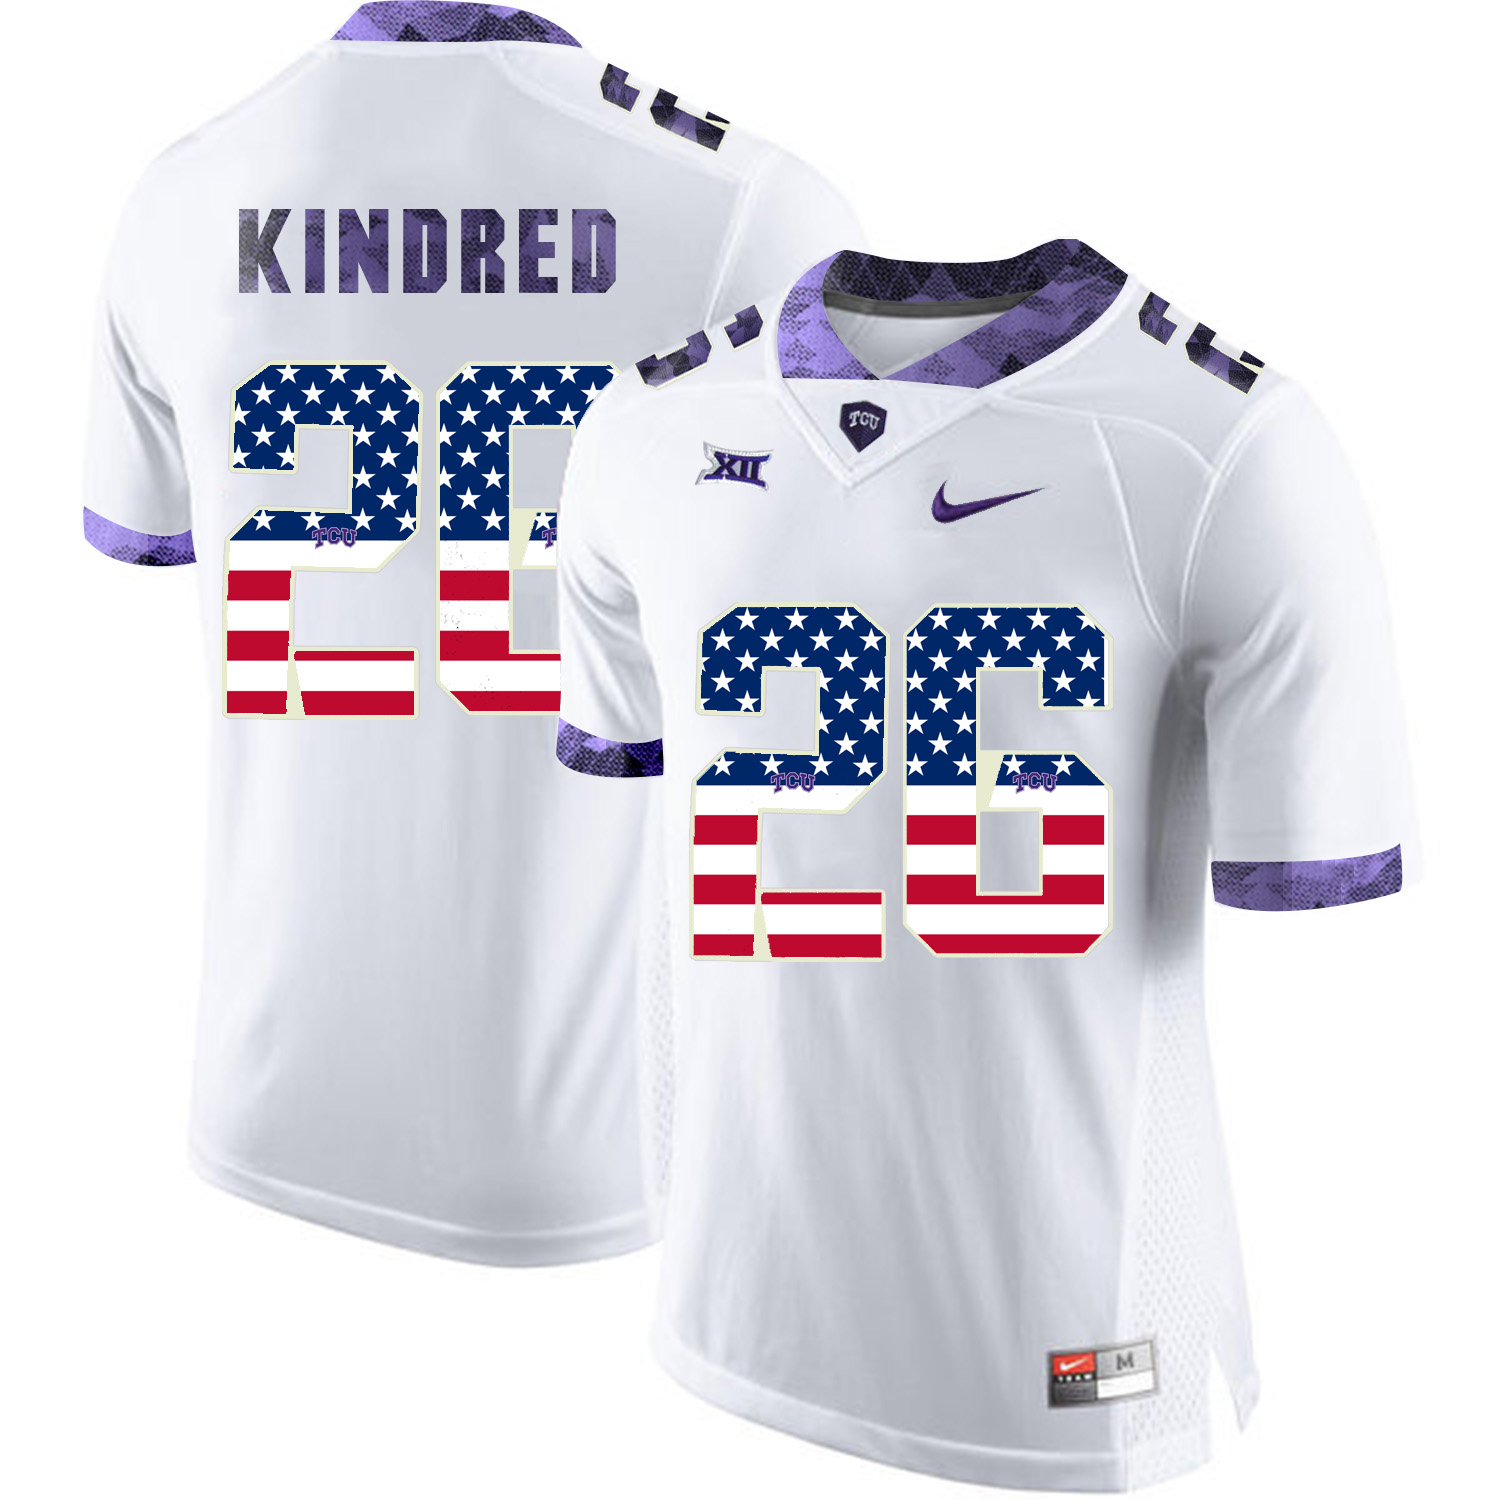 TCU Horned Frogs 26 Derrick Kindred White USA Flag College Football Jersey